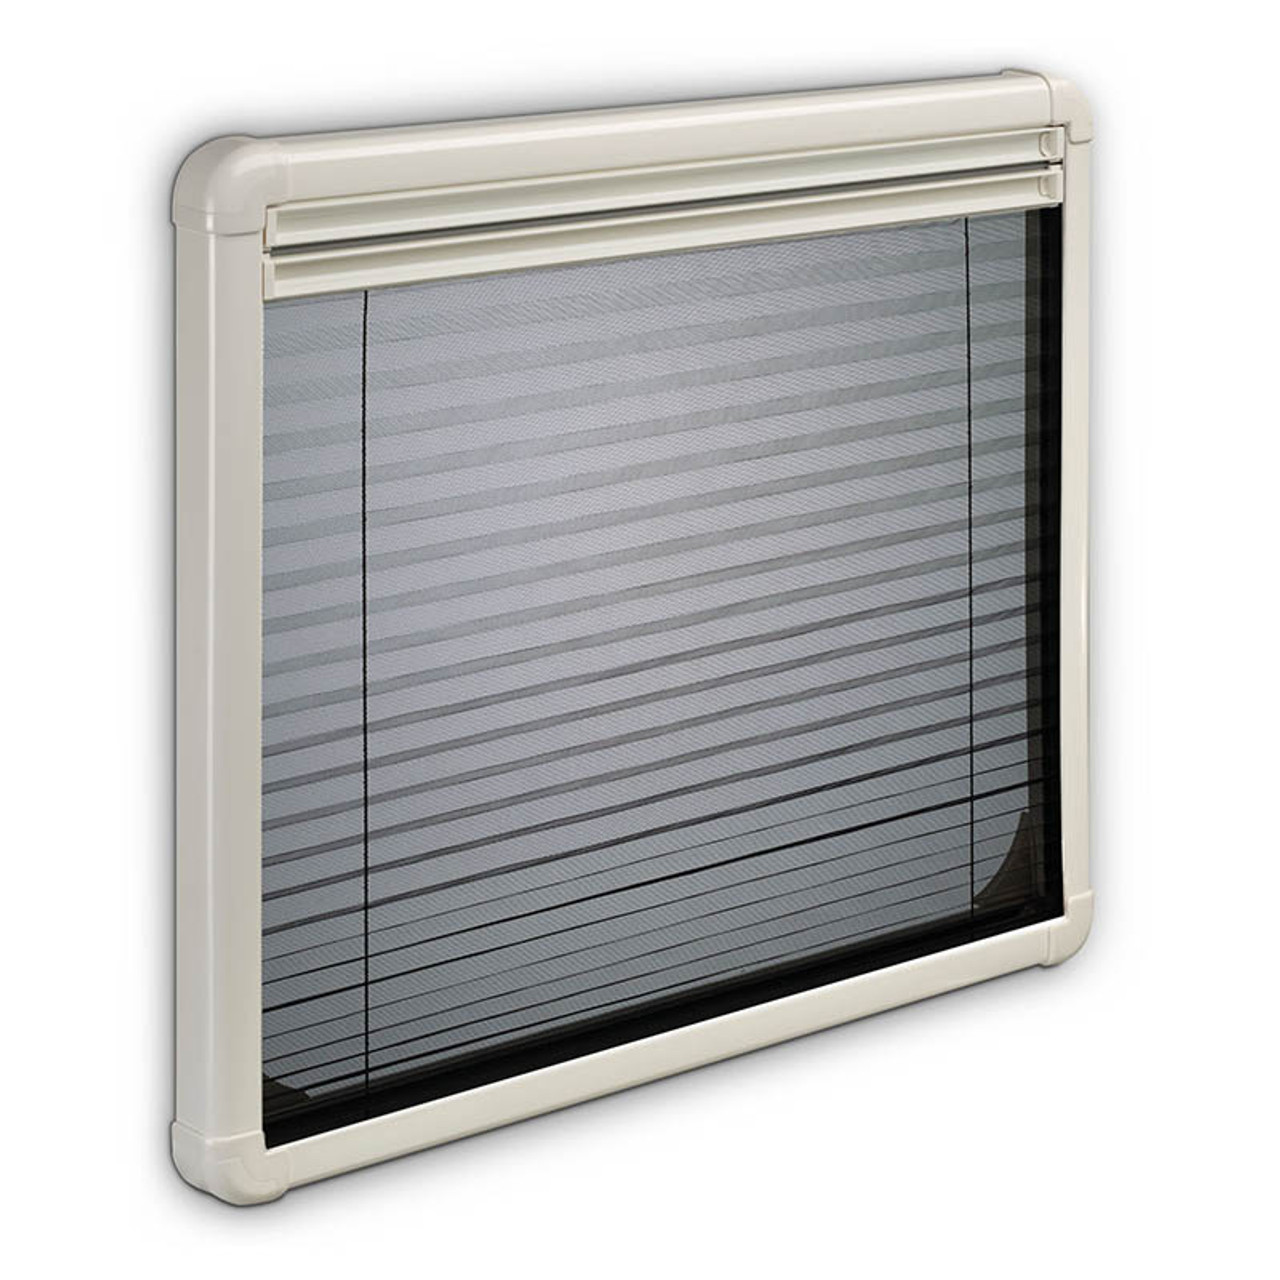 Pictured with a fully closed flyscreen which is included with the optional pleated blind, the Dometic S7P hinged windows are great for use in the summer allowing fresh air to circulate without flies. The Dometic S7P caravan windows are lightly tinted as standard.